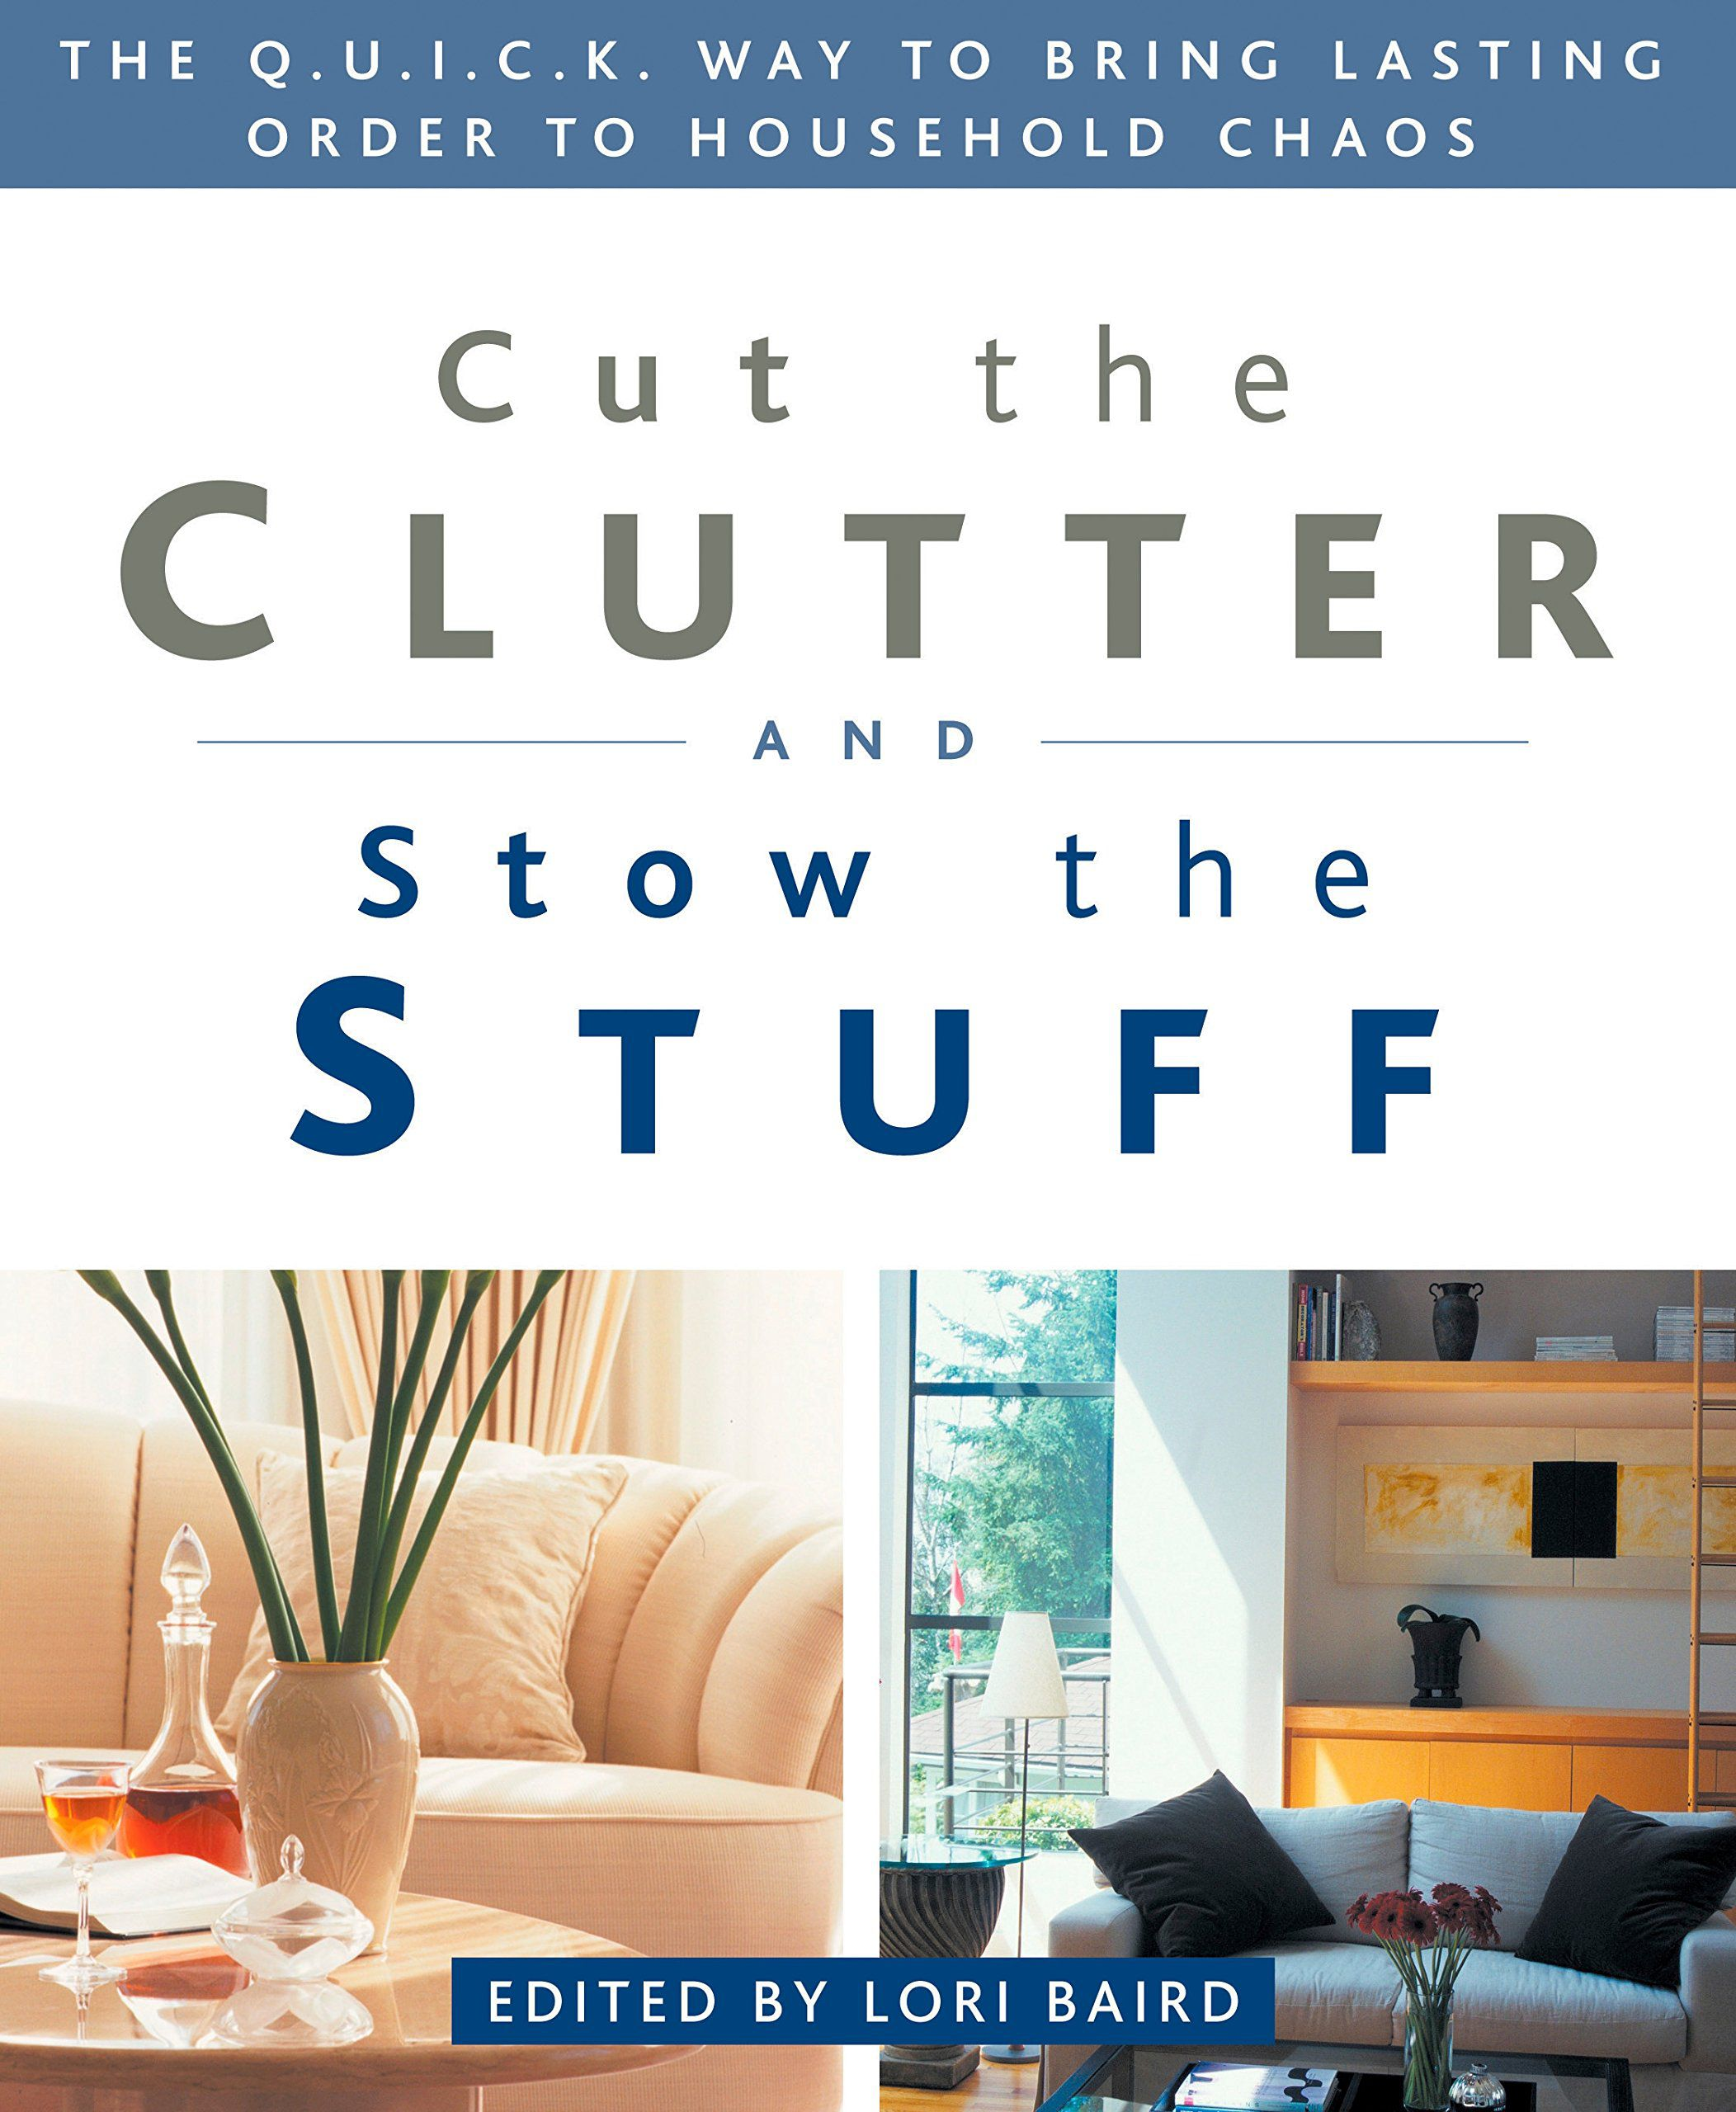 Cut The Clutter And Stow The Stuff by Lori Baird